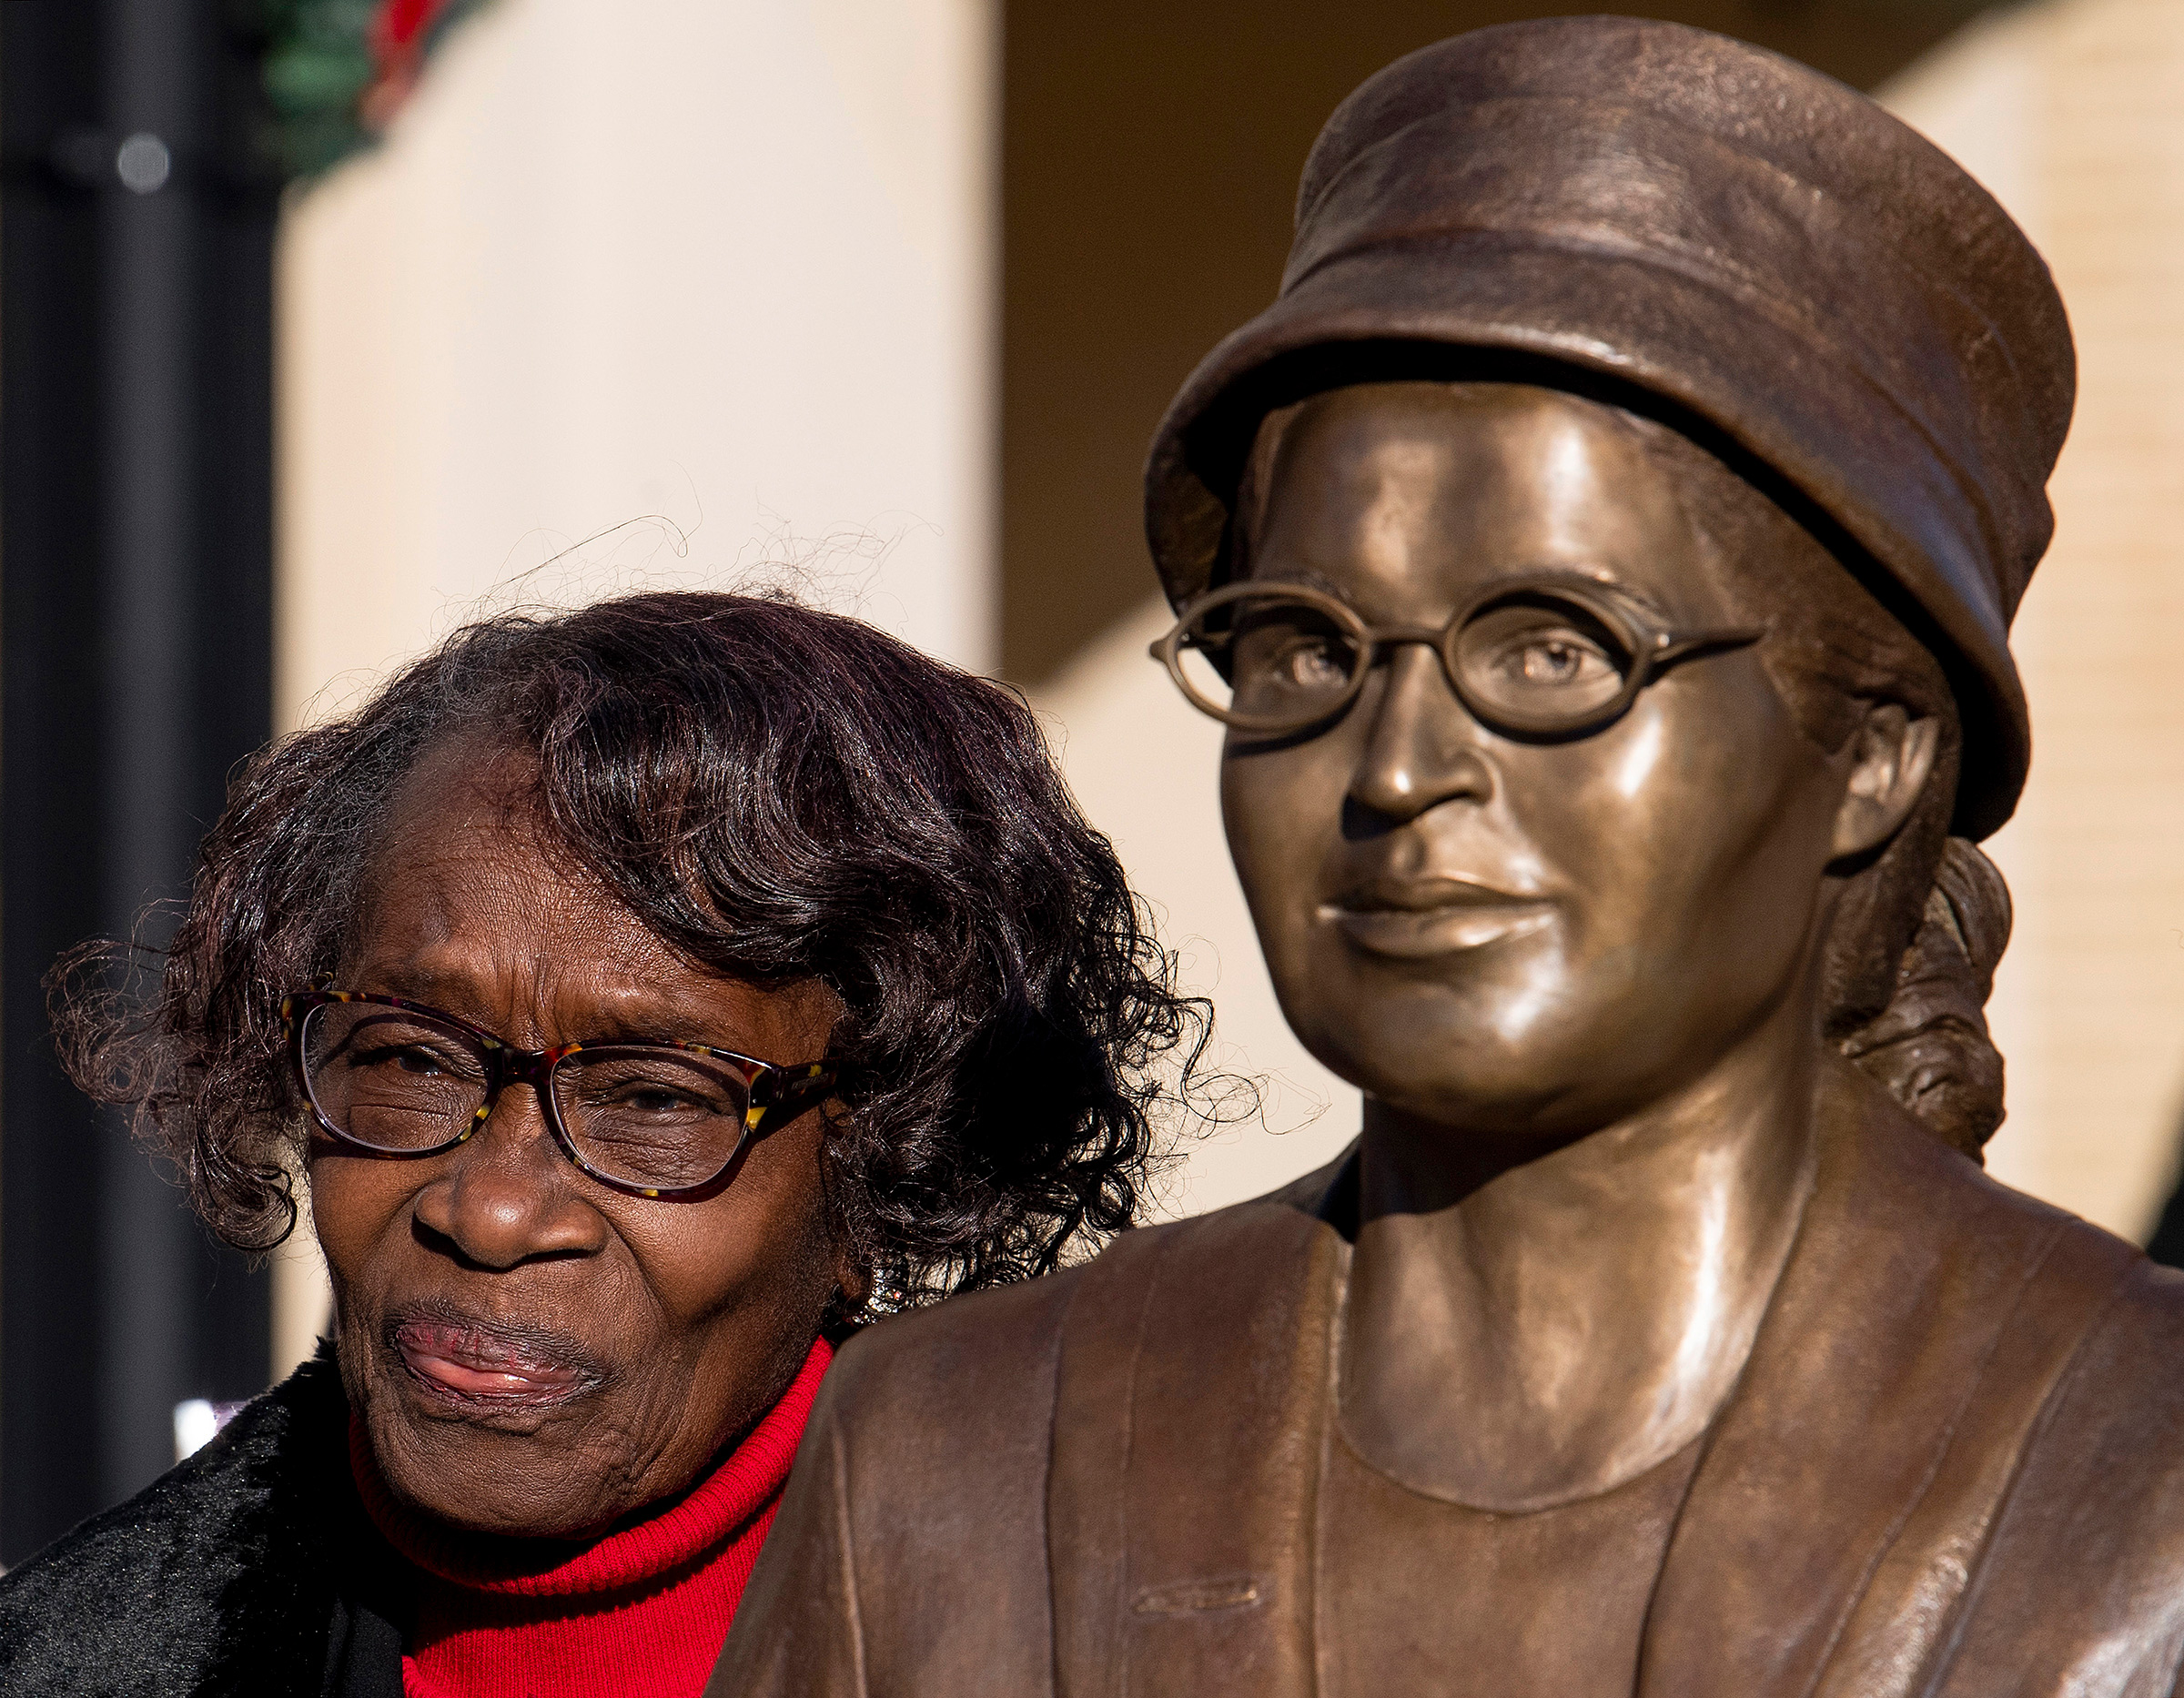 Mary Louise Smith-Ware, a plaintiff in the Browder vs. Gayle case that led to the desegregation of buses in Montgomery, stands beside the Rosa Parks statue after its unveiling event in downtown Montgomery, Ala., on Dec. 1, 2019, the anniversary of Parks being arrested for not giving up her seat on a city bus.